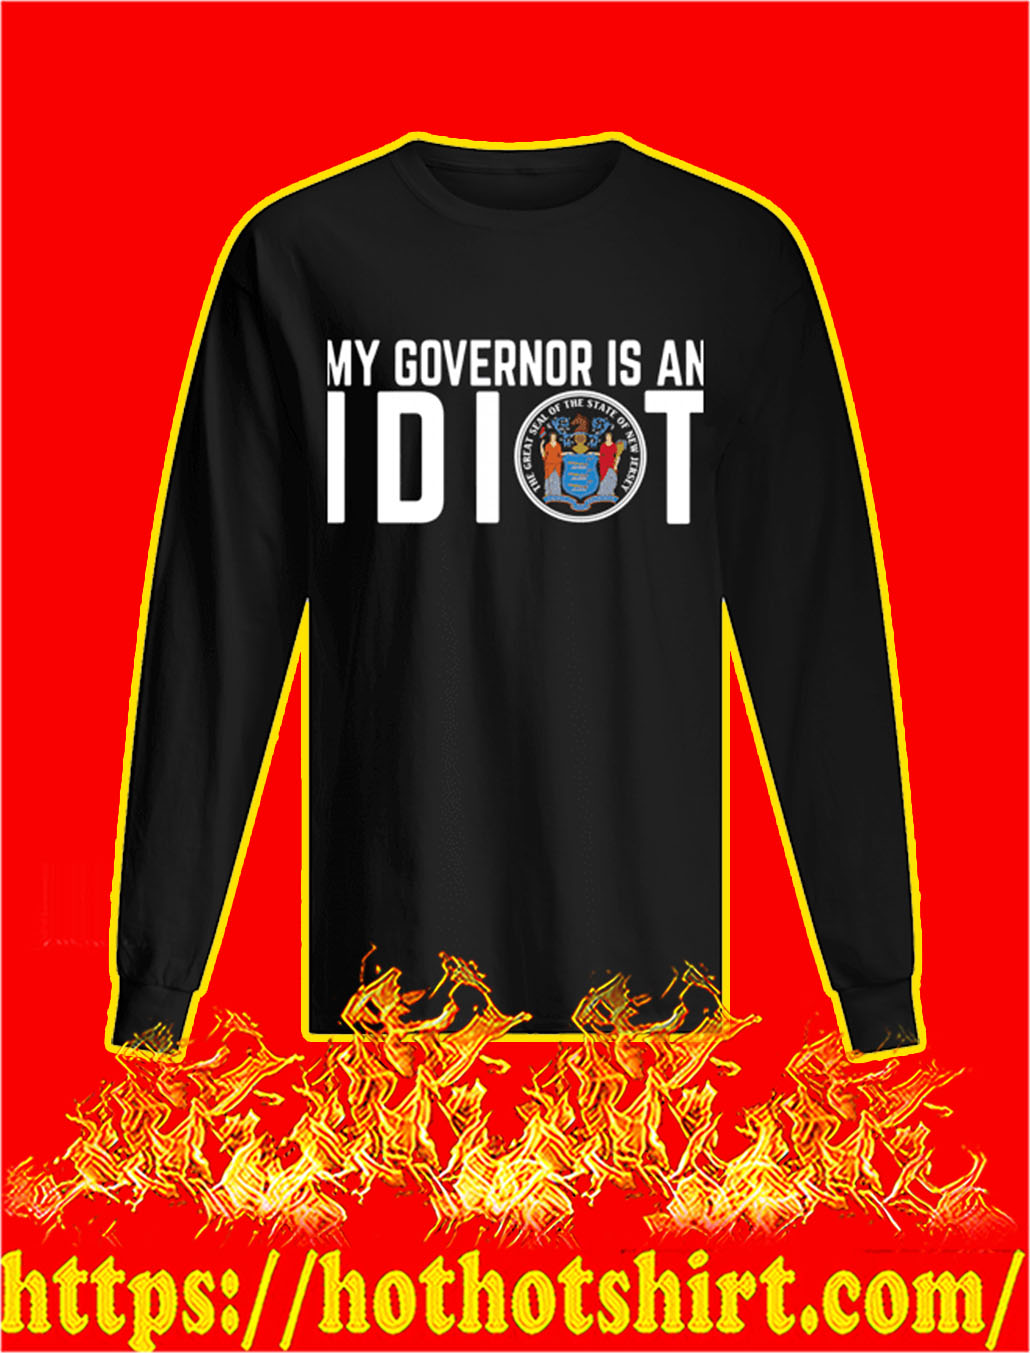 My Governor Is An Idiot longsleeve tee